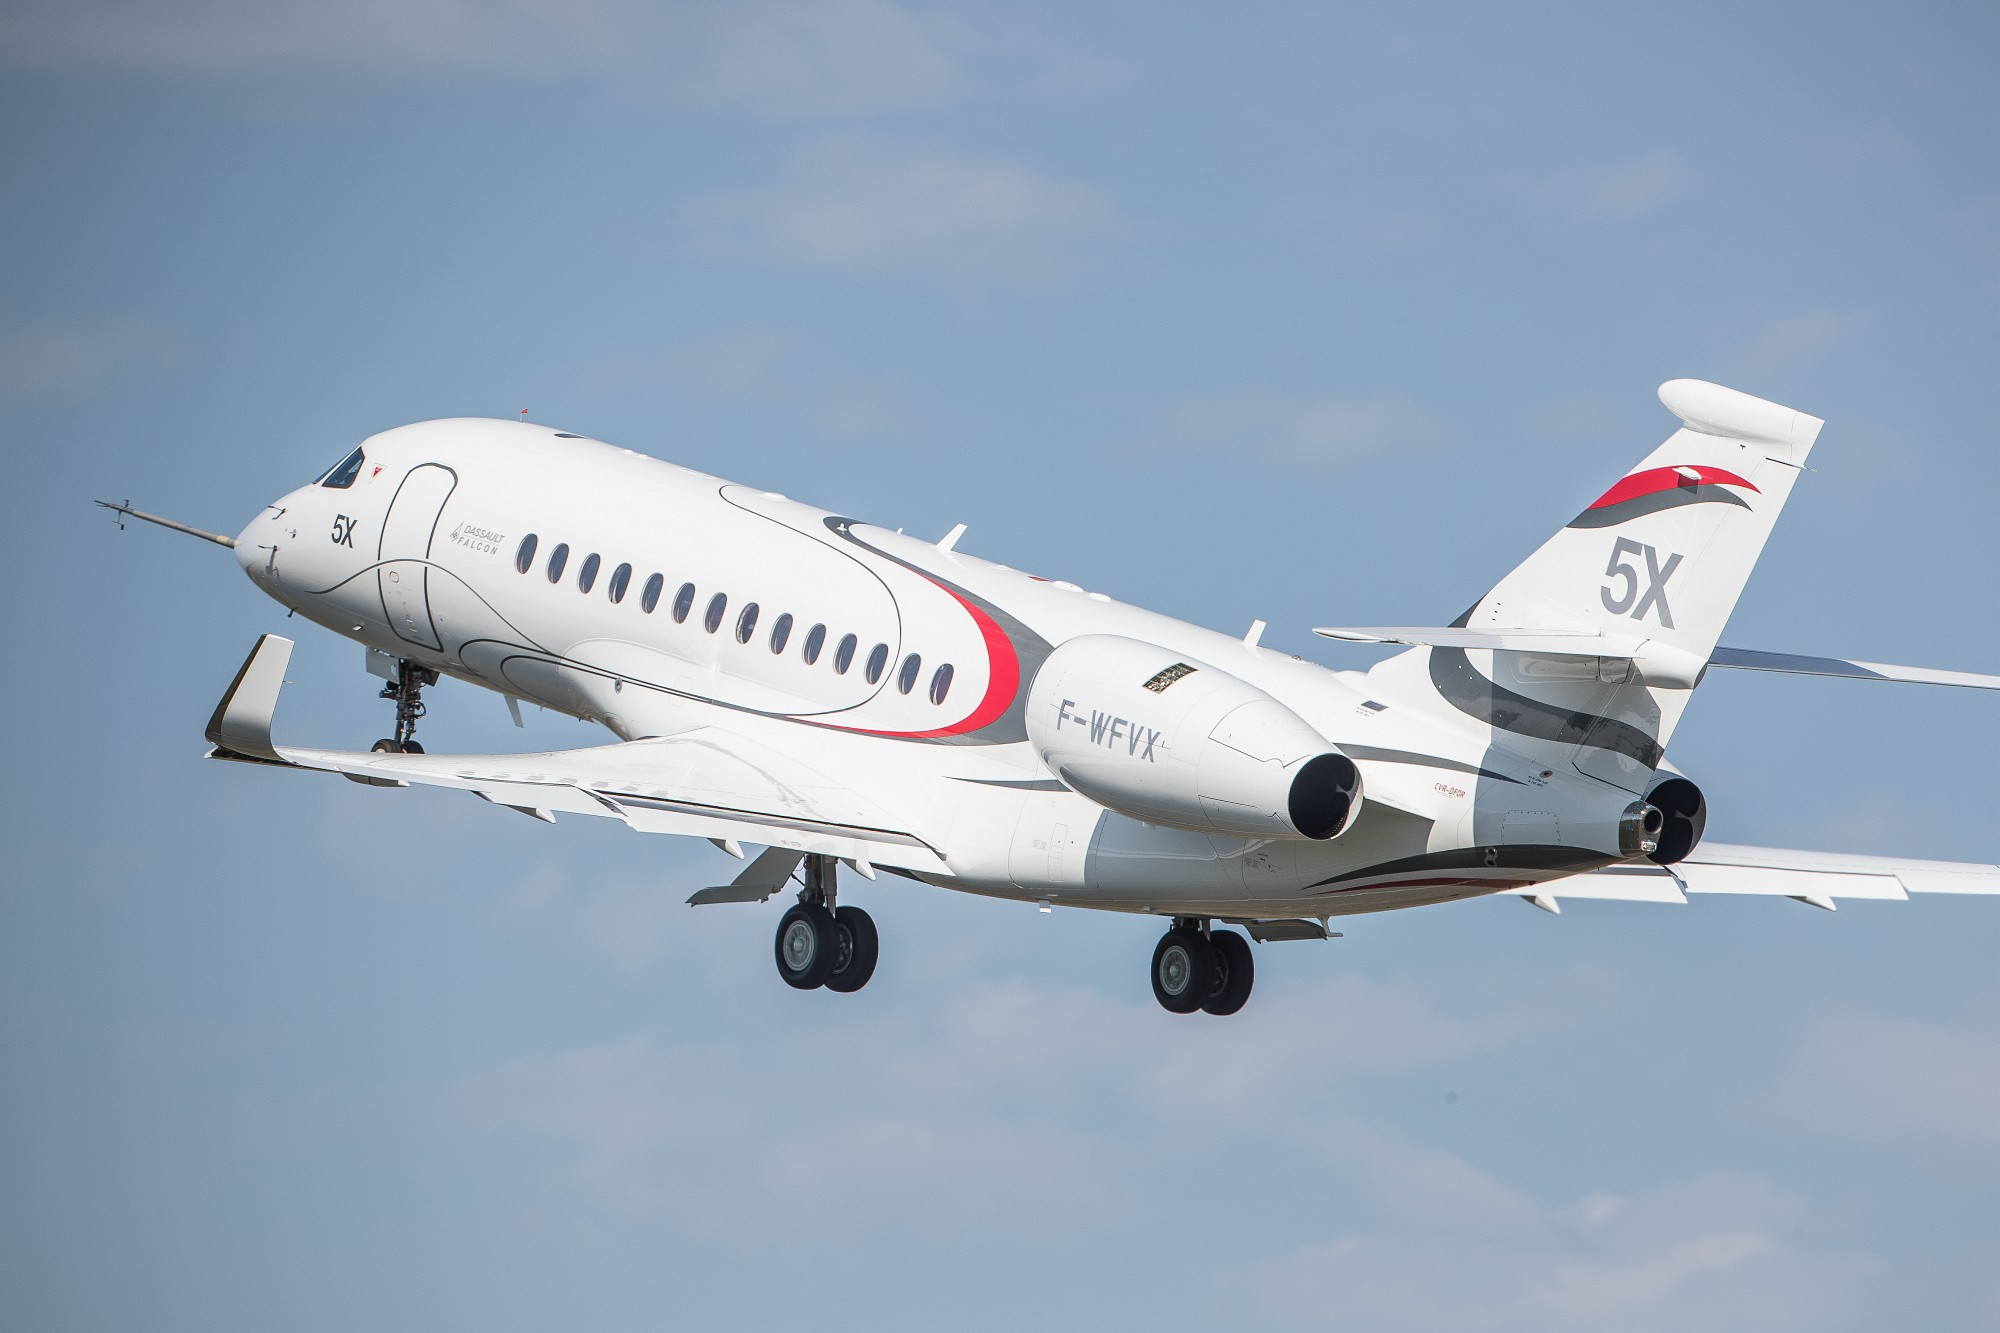 Dassault Falcon 5X in flight